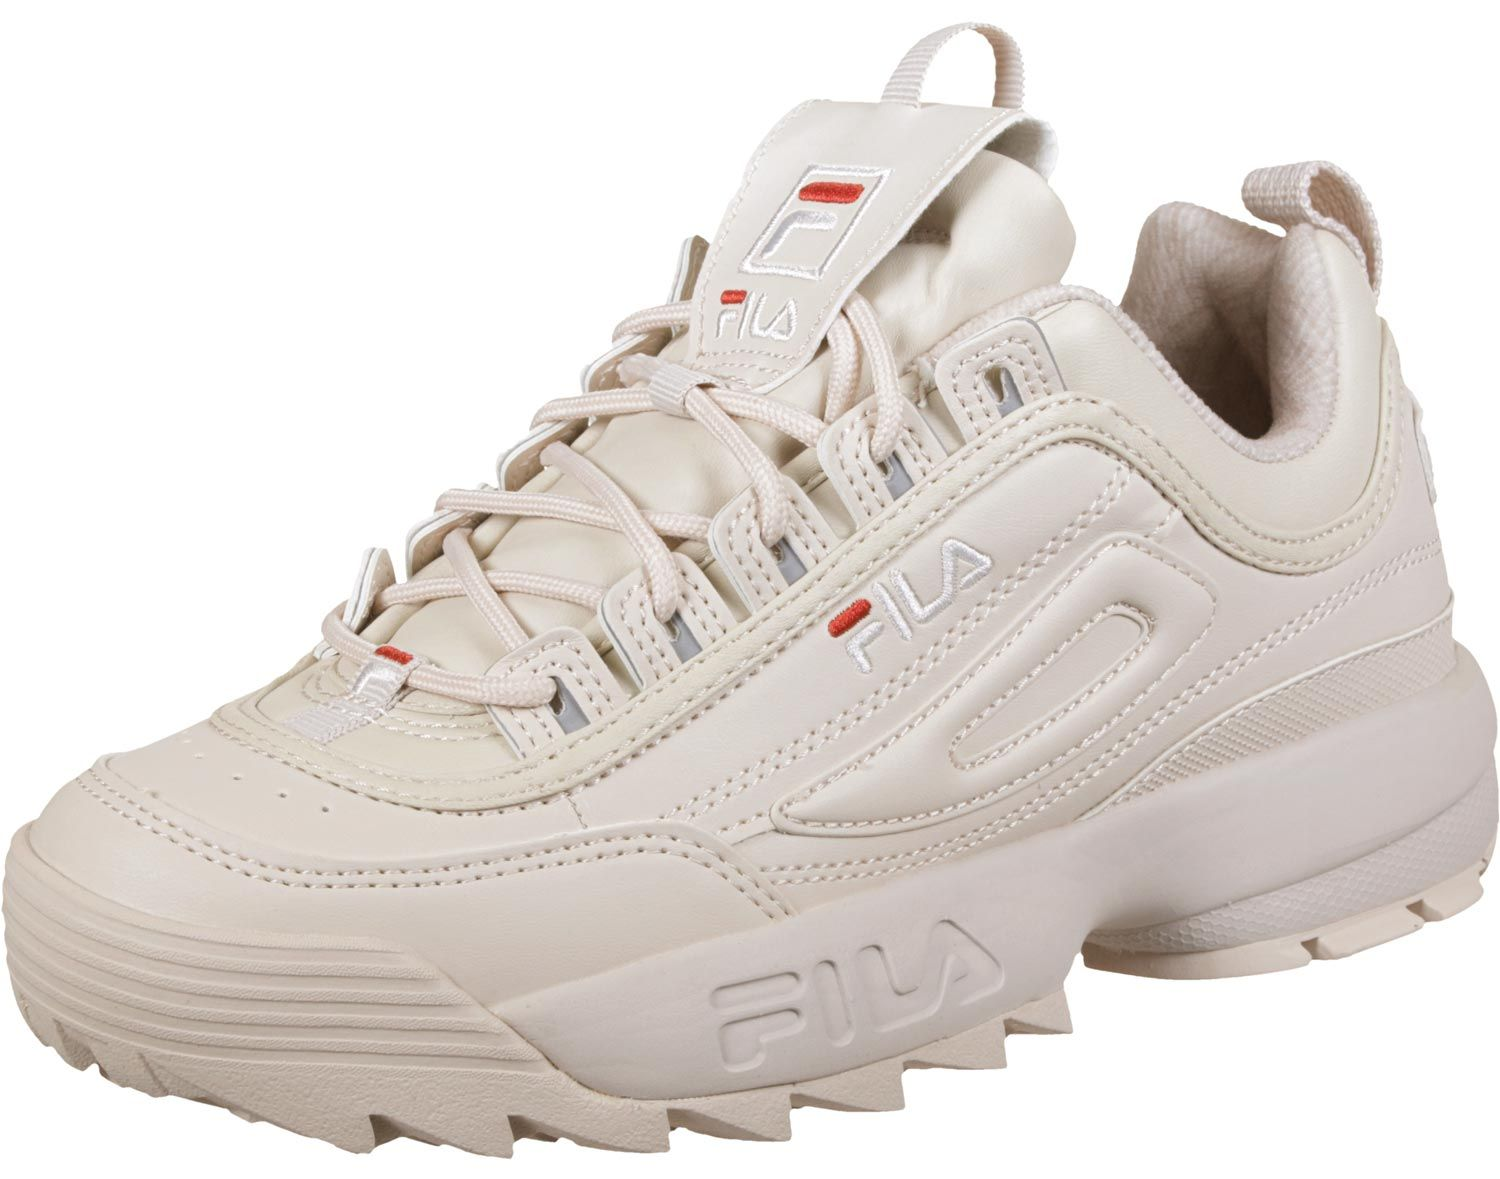 Fila Heritage Disruptor Low W chaussures | Shoes ...